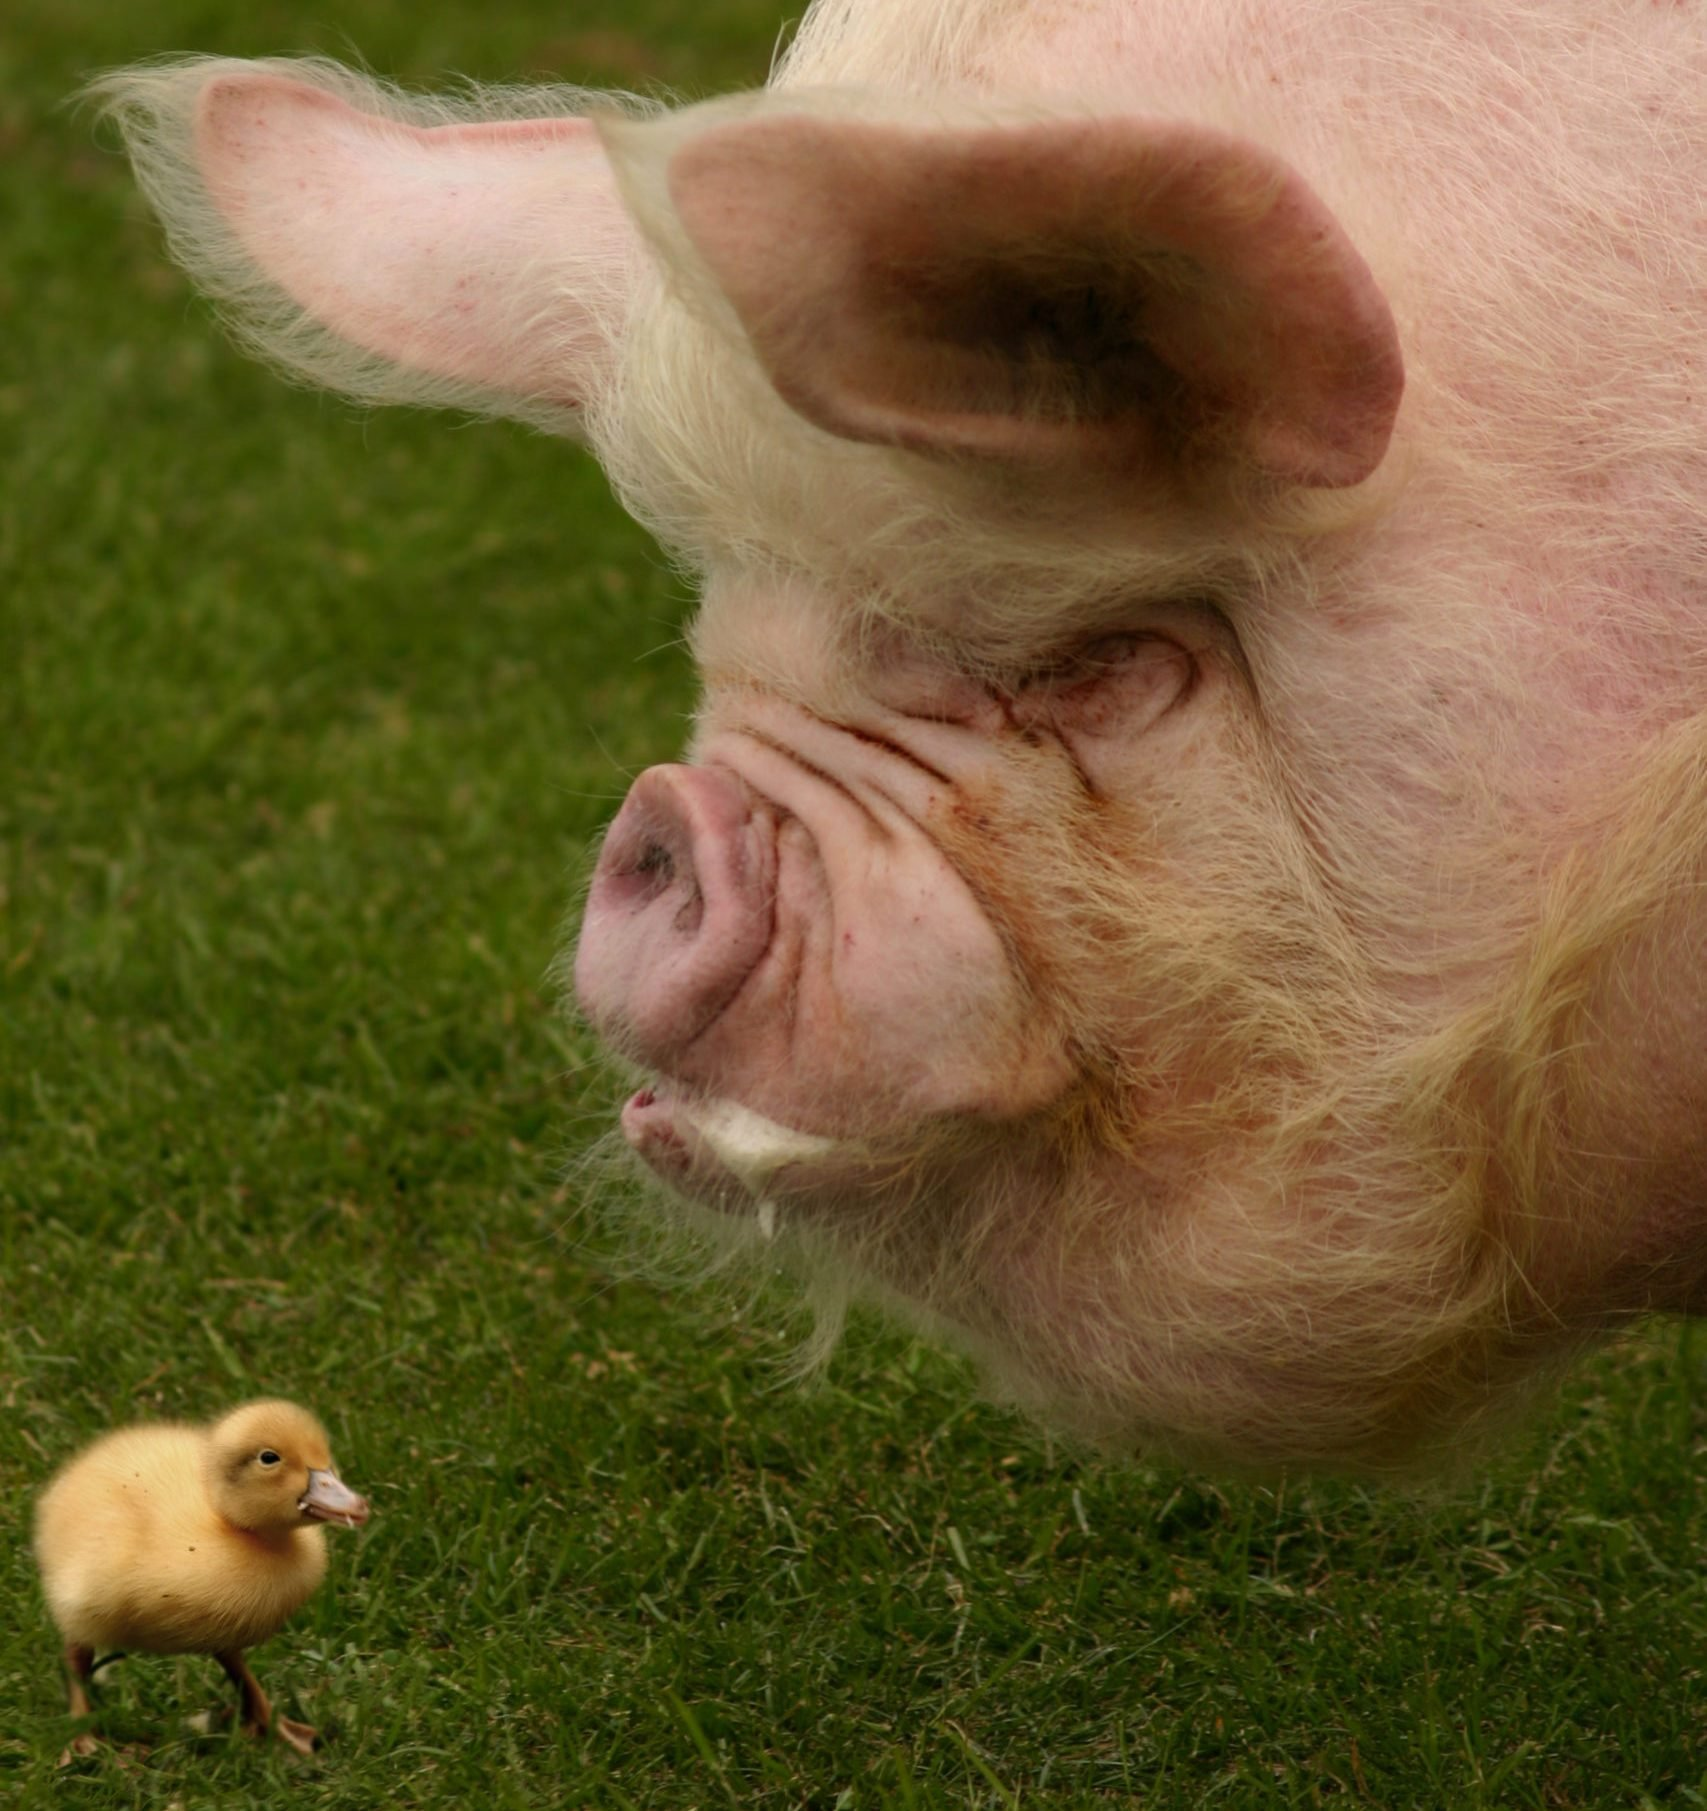 Pig and duckling